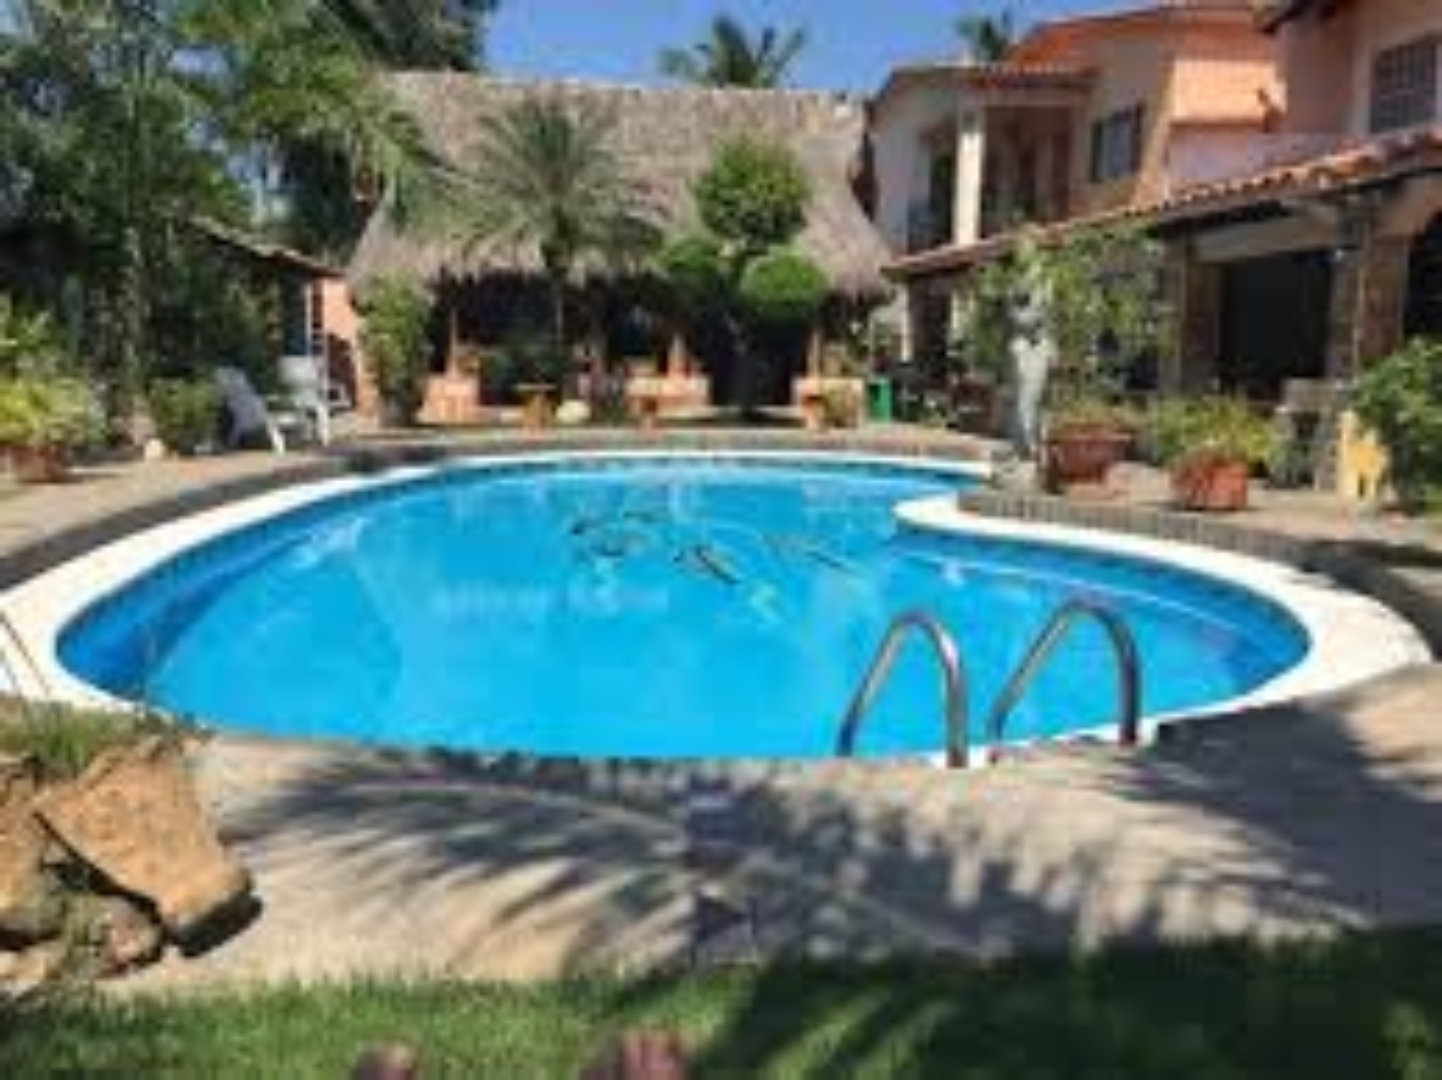 A person in a swimming pool at Casa Virgilios.